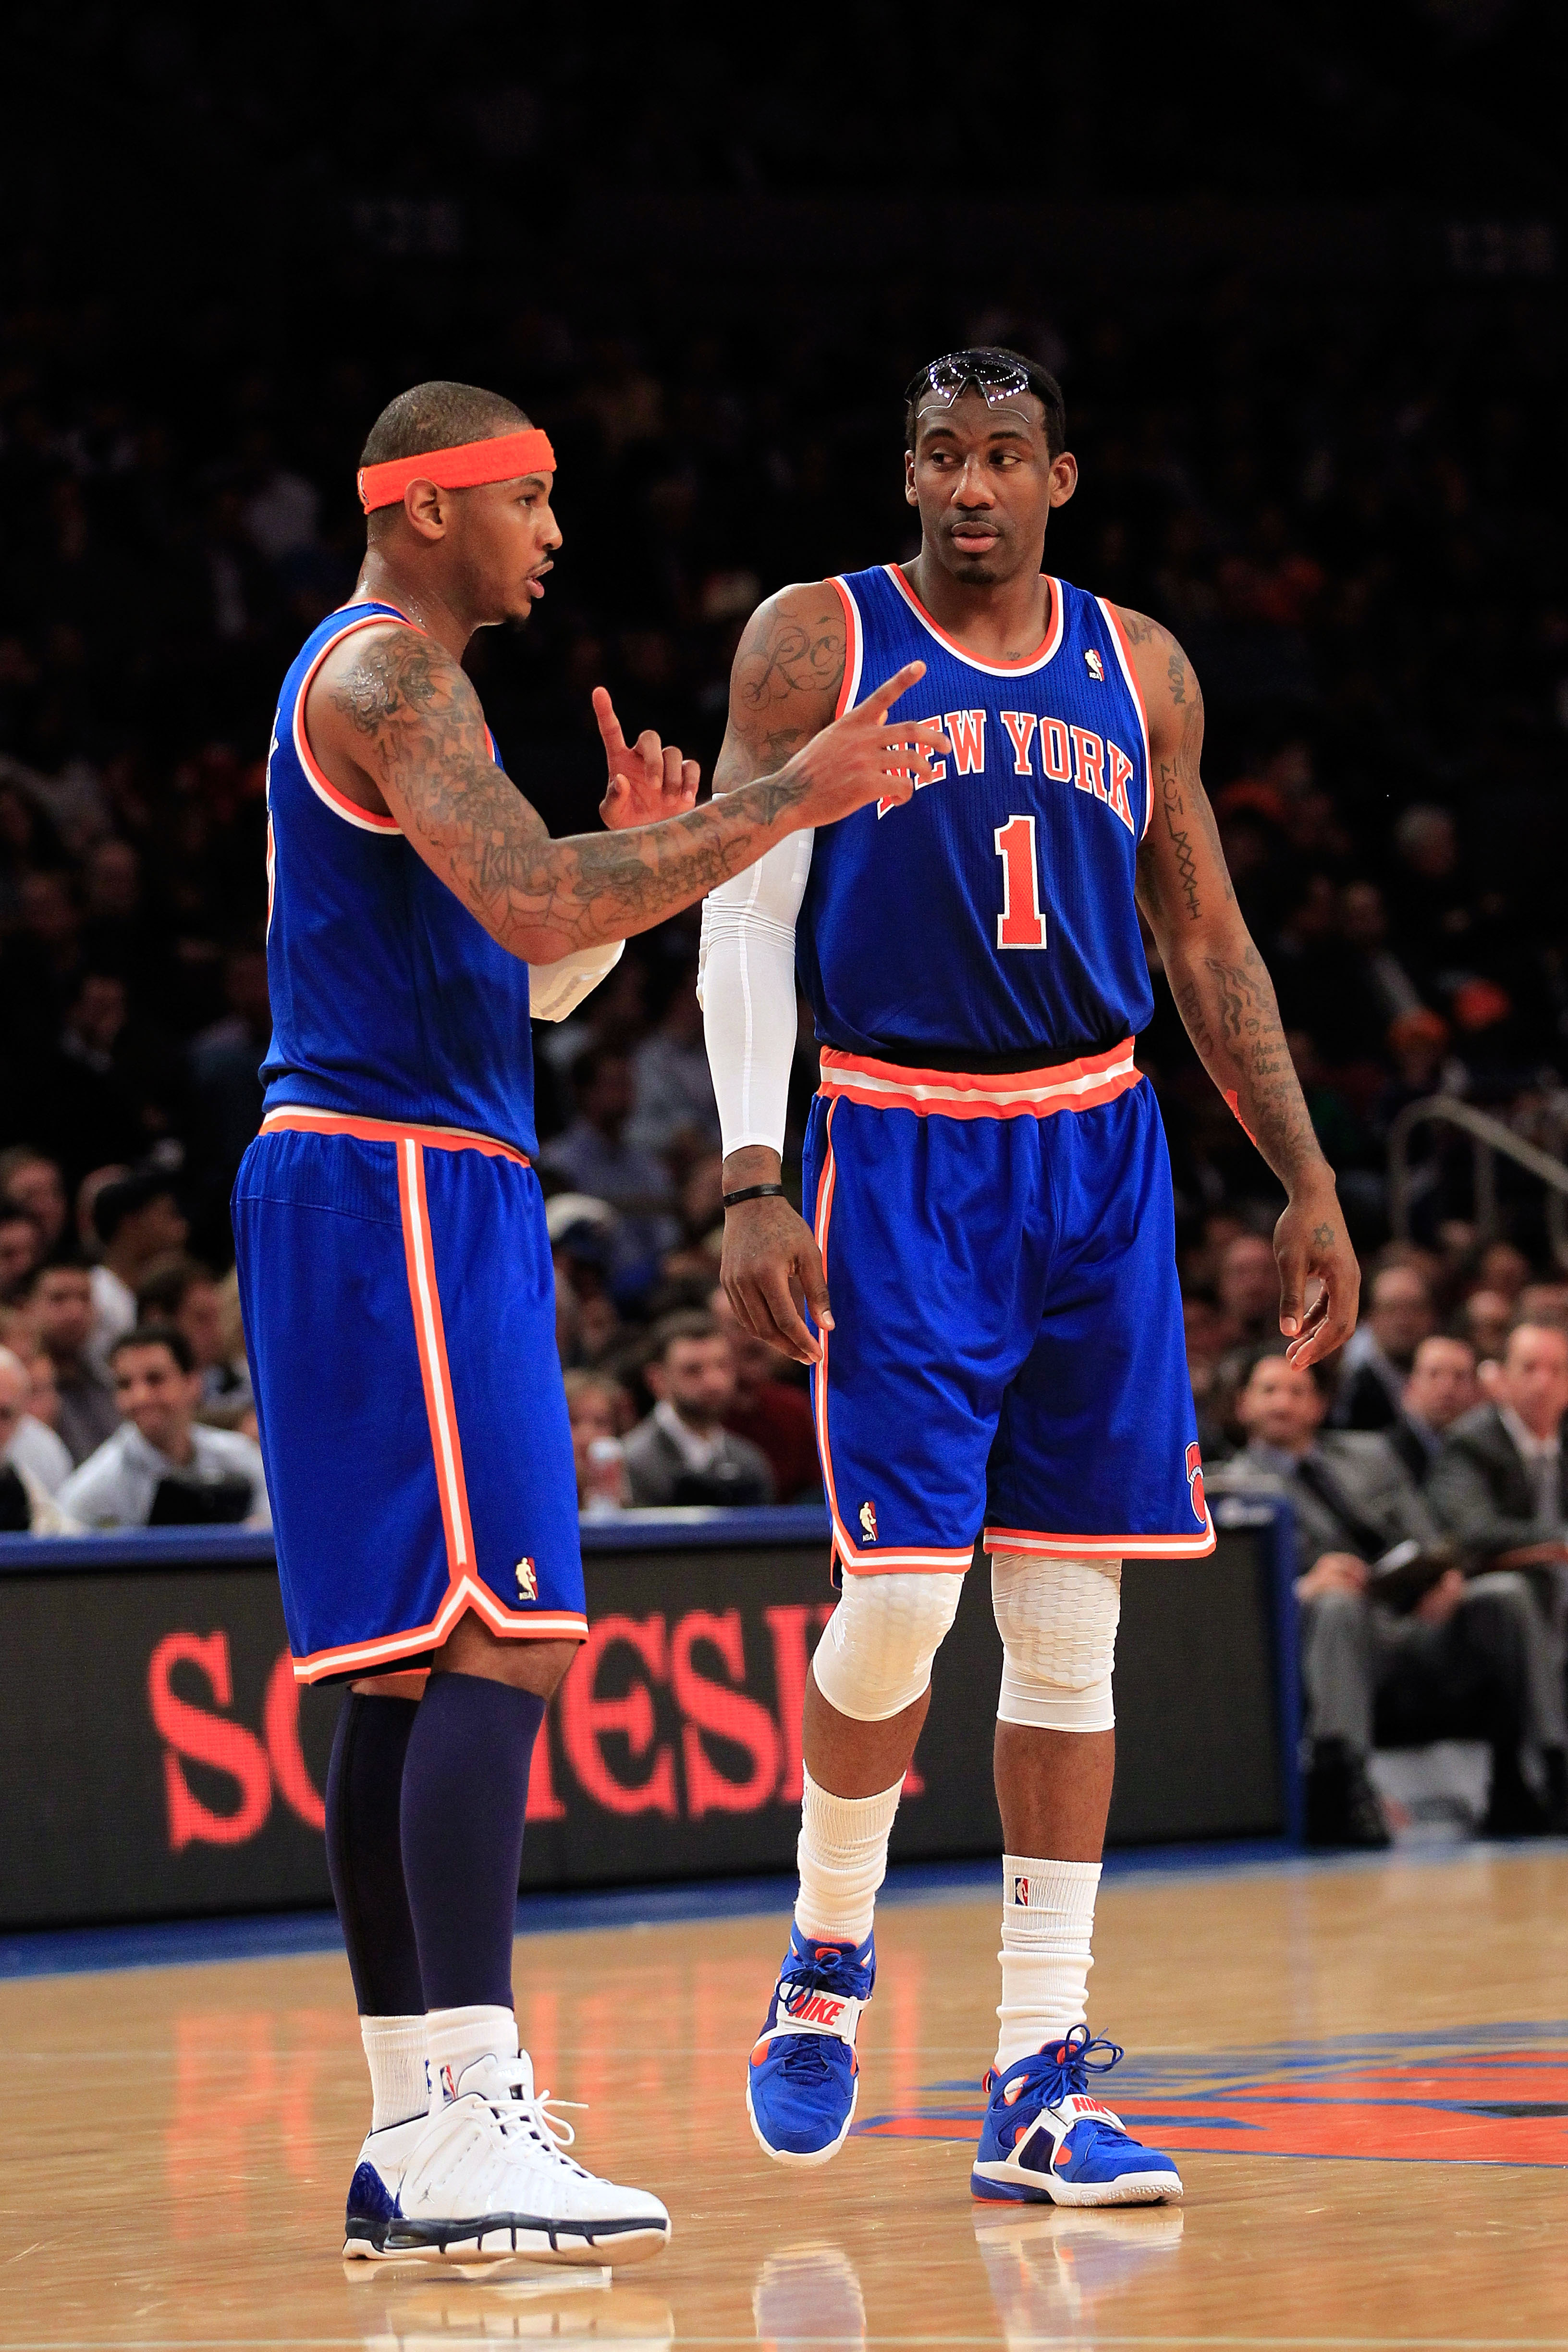 fd7cff592c8 Chris Paul would help elevate the games of Carmelo Anthony and Amar e  Stoudemire